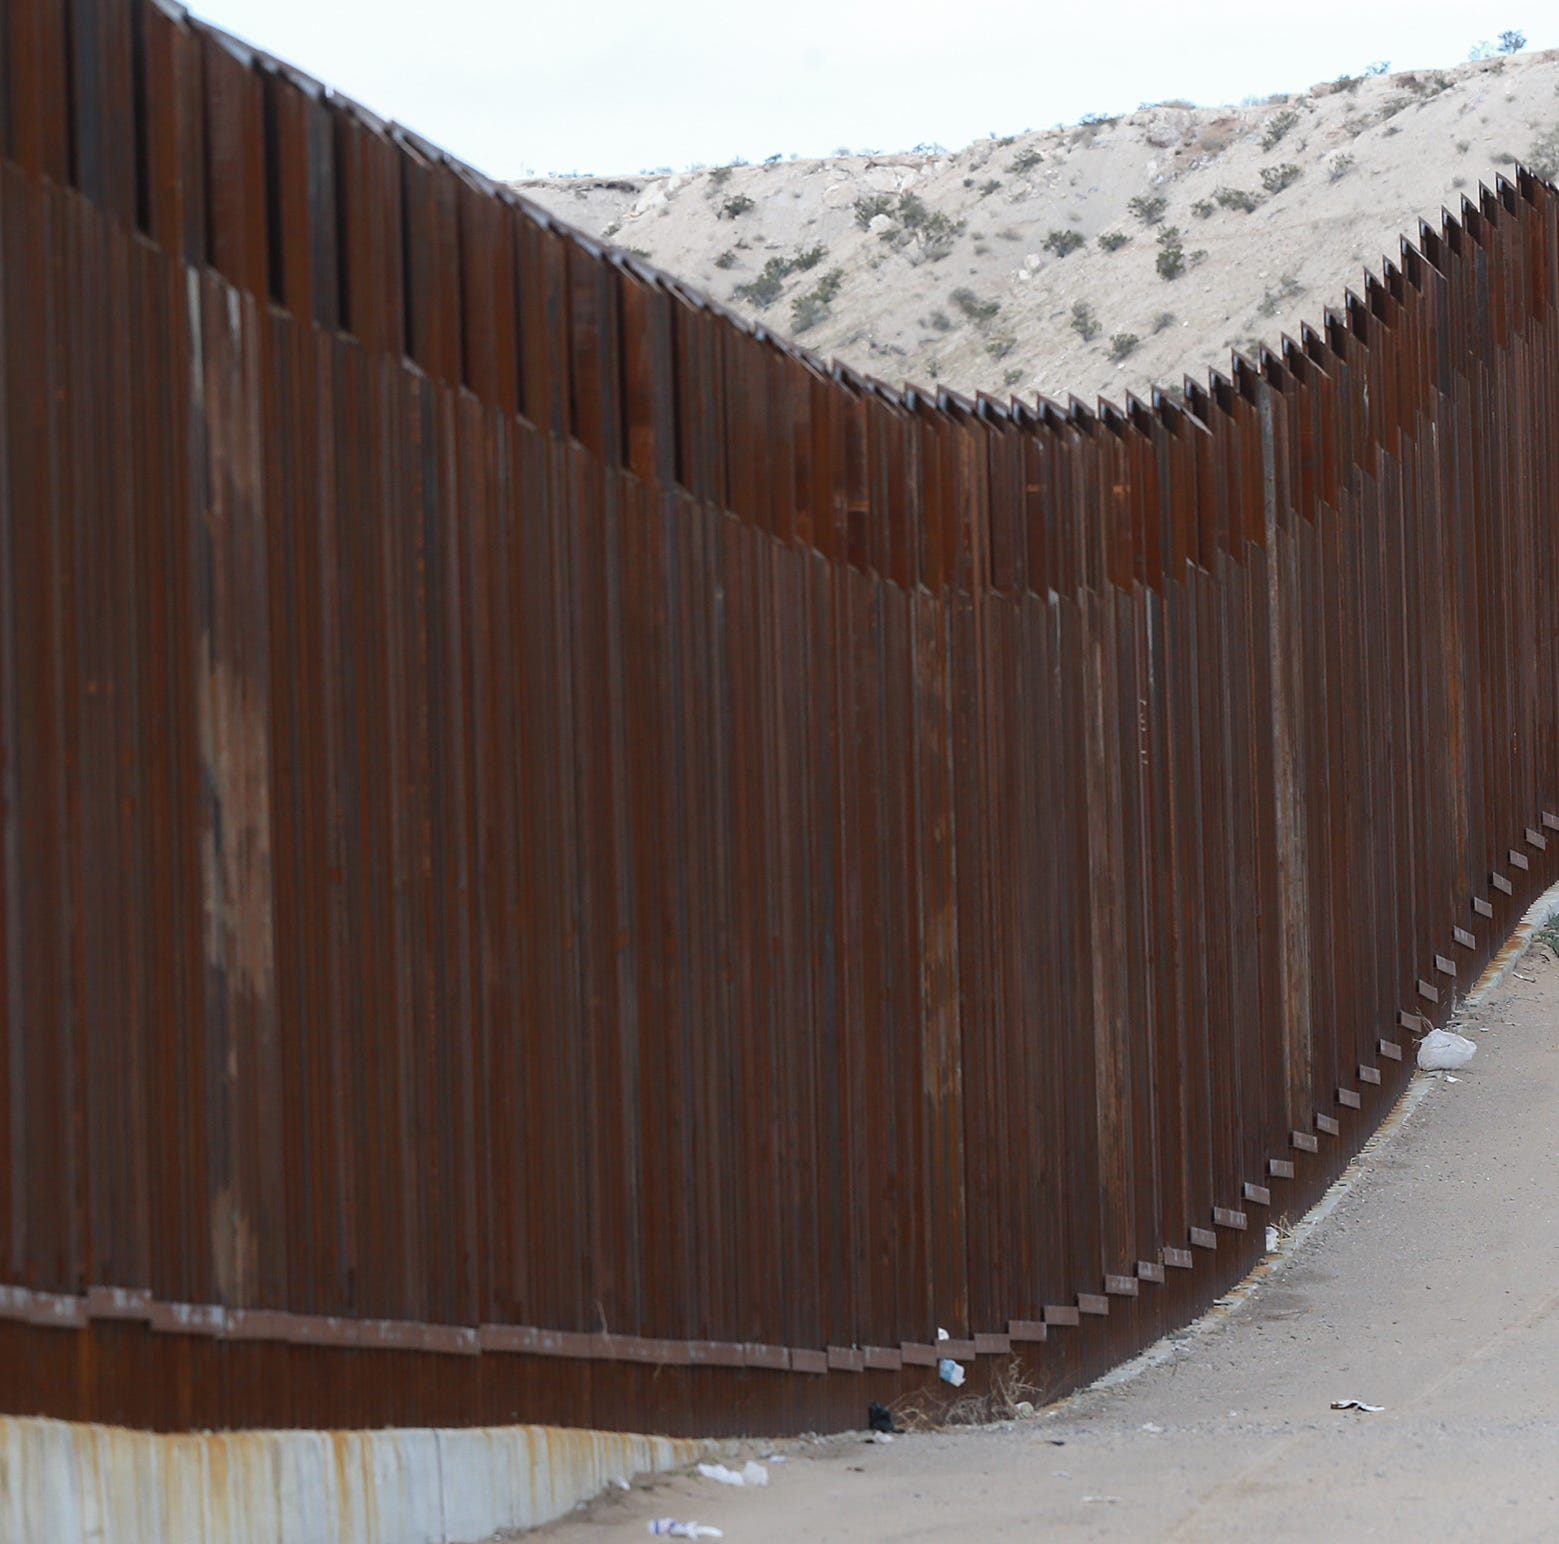 7-year-old migrant girl dies in El Paso after Border Patrol custody in NM